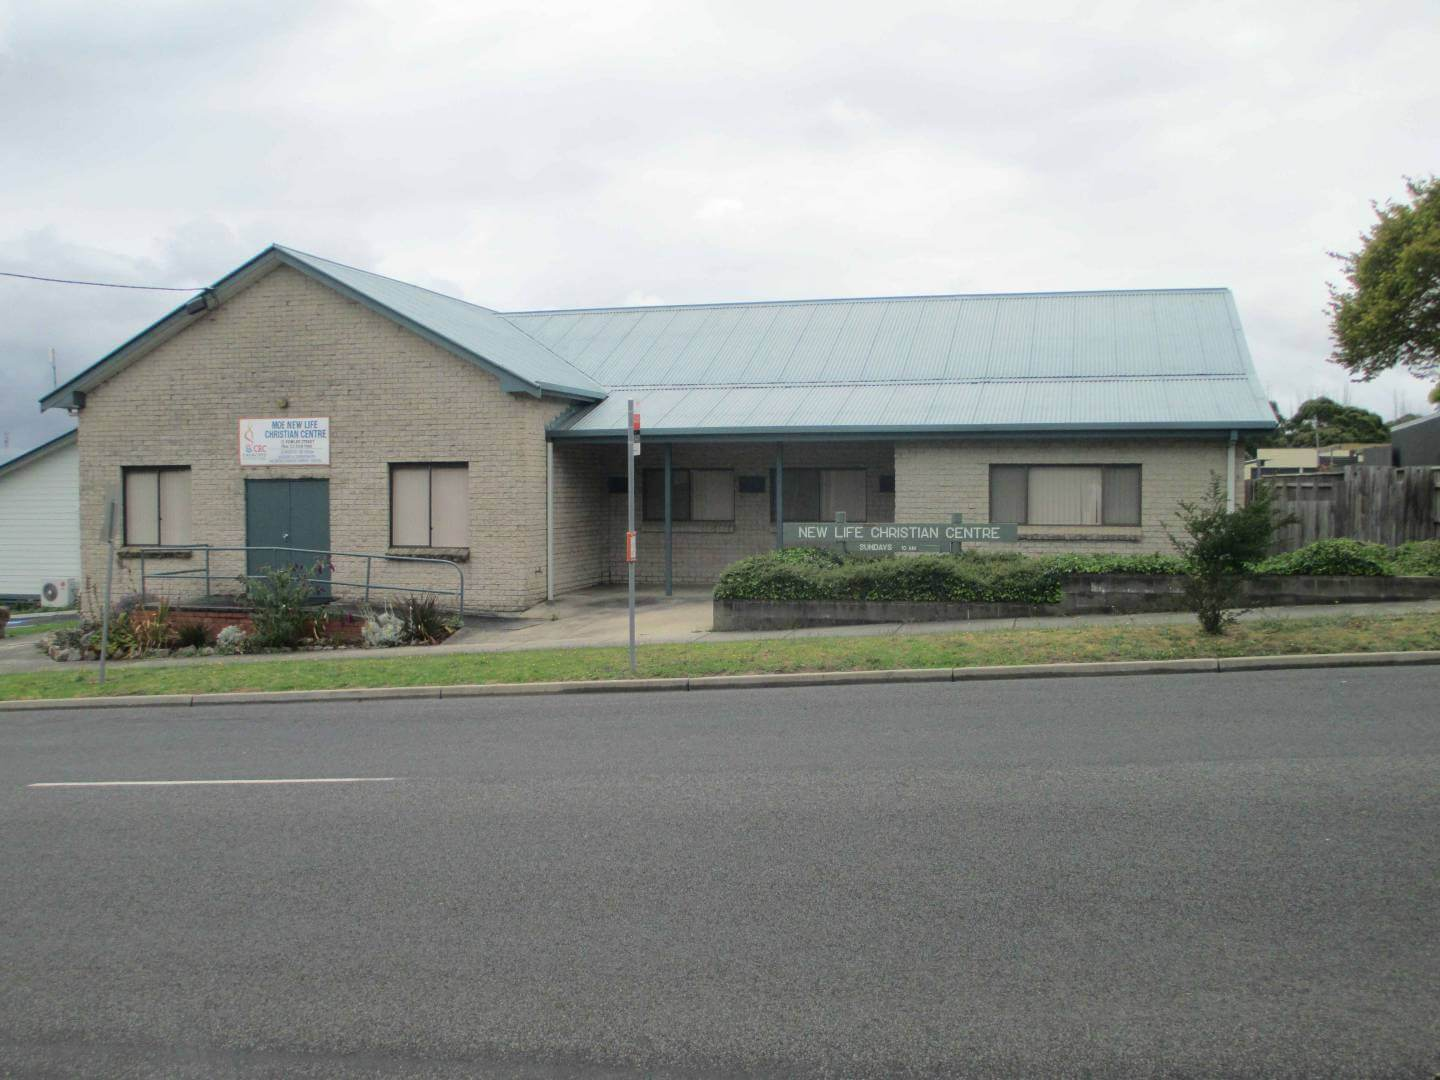 New Life Christian Centre